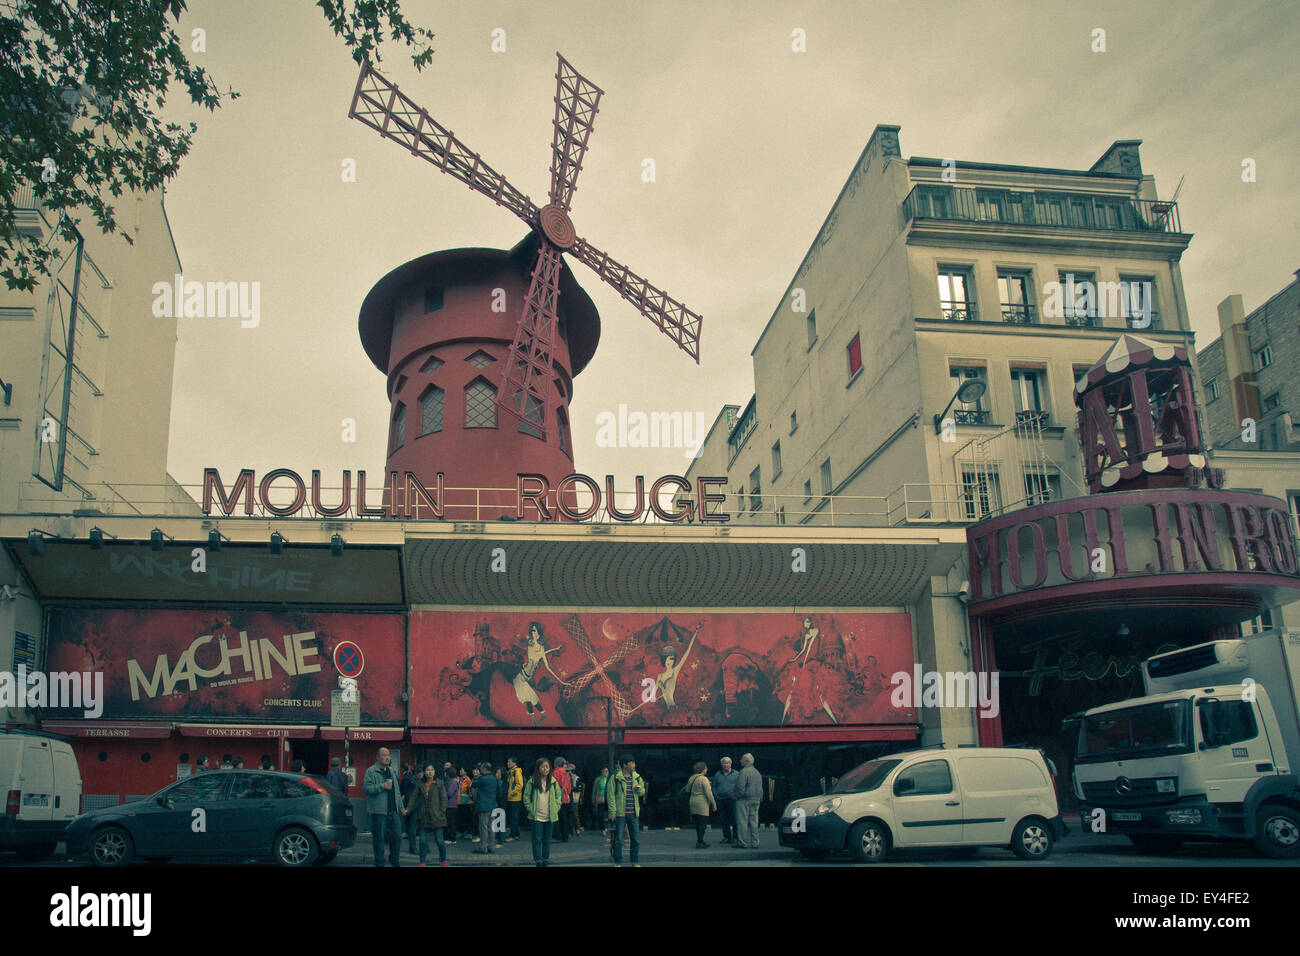 Paris, France - October 9, 2014:  Street view with cars and people in at historic Moulin Rouge Paris France with - Stock Image